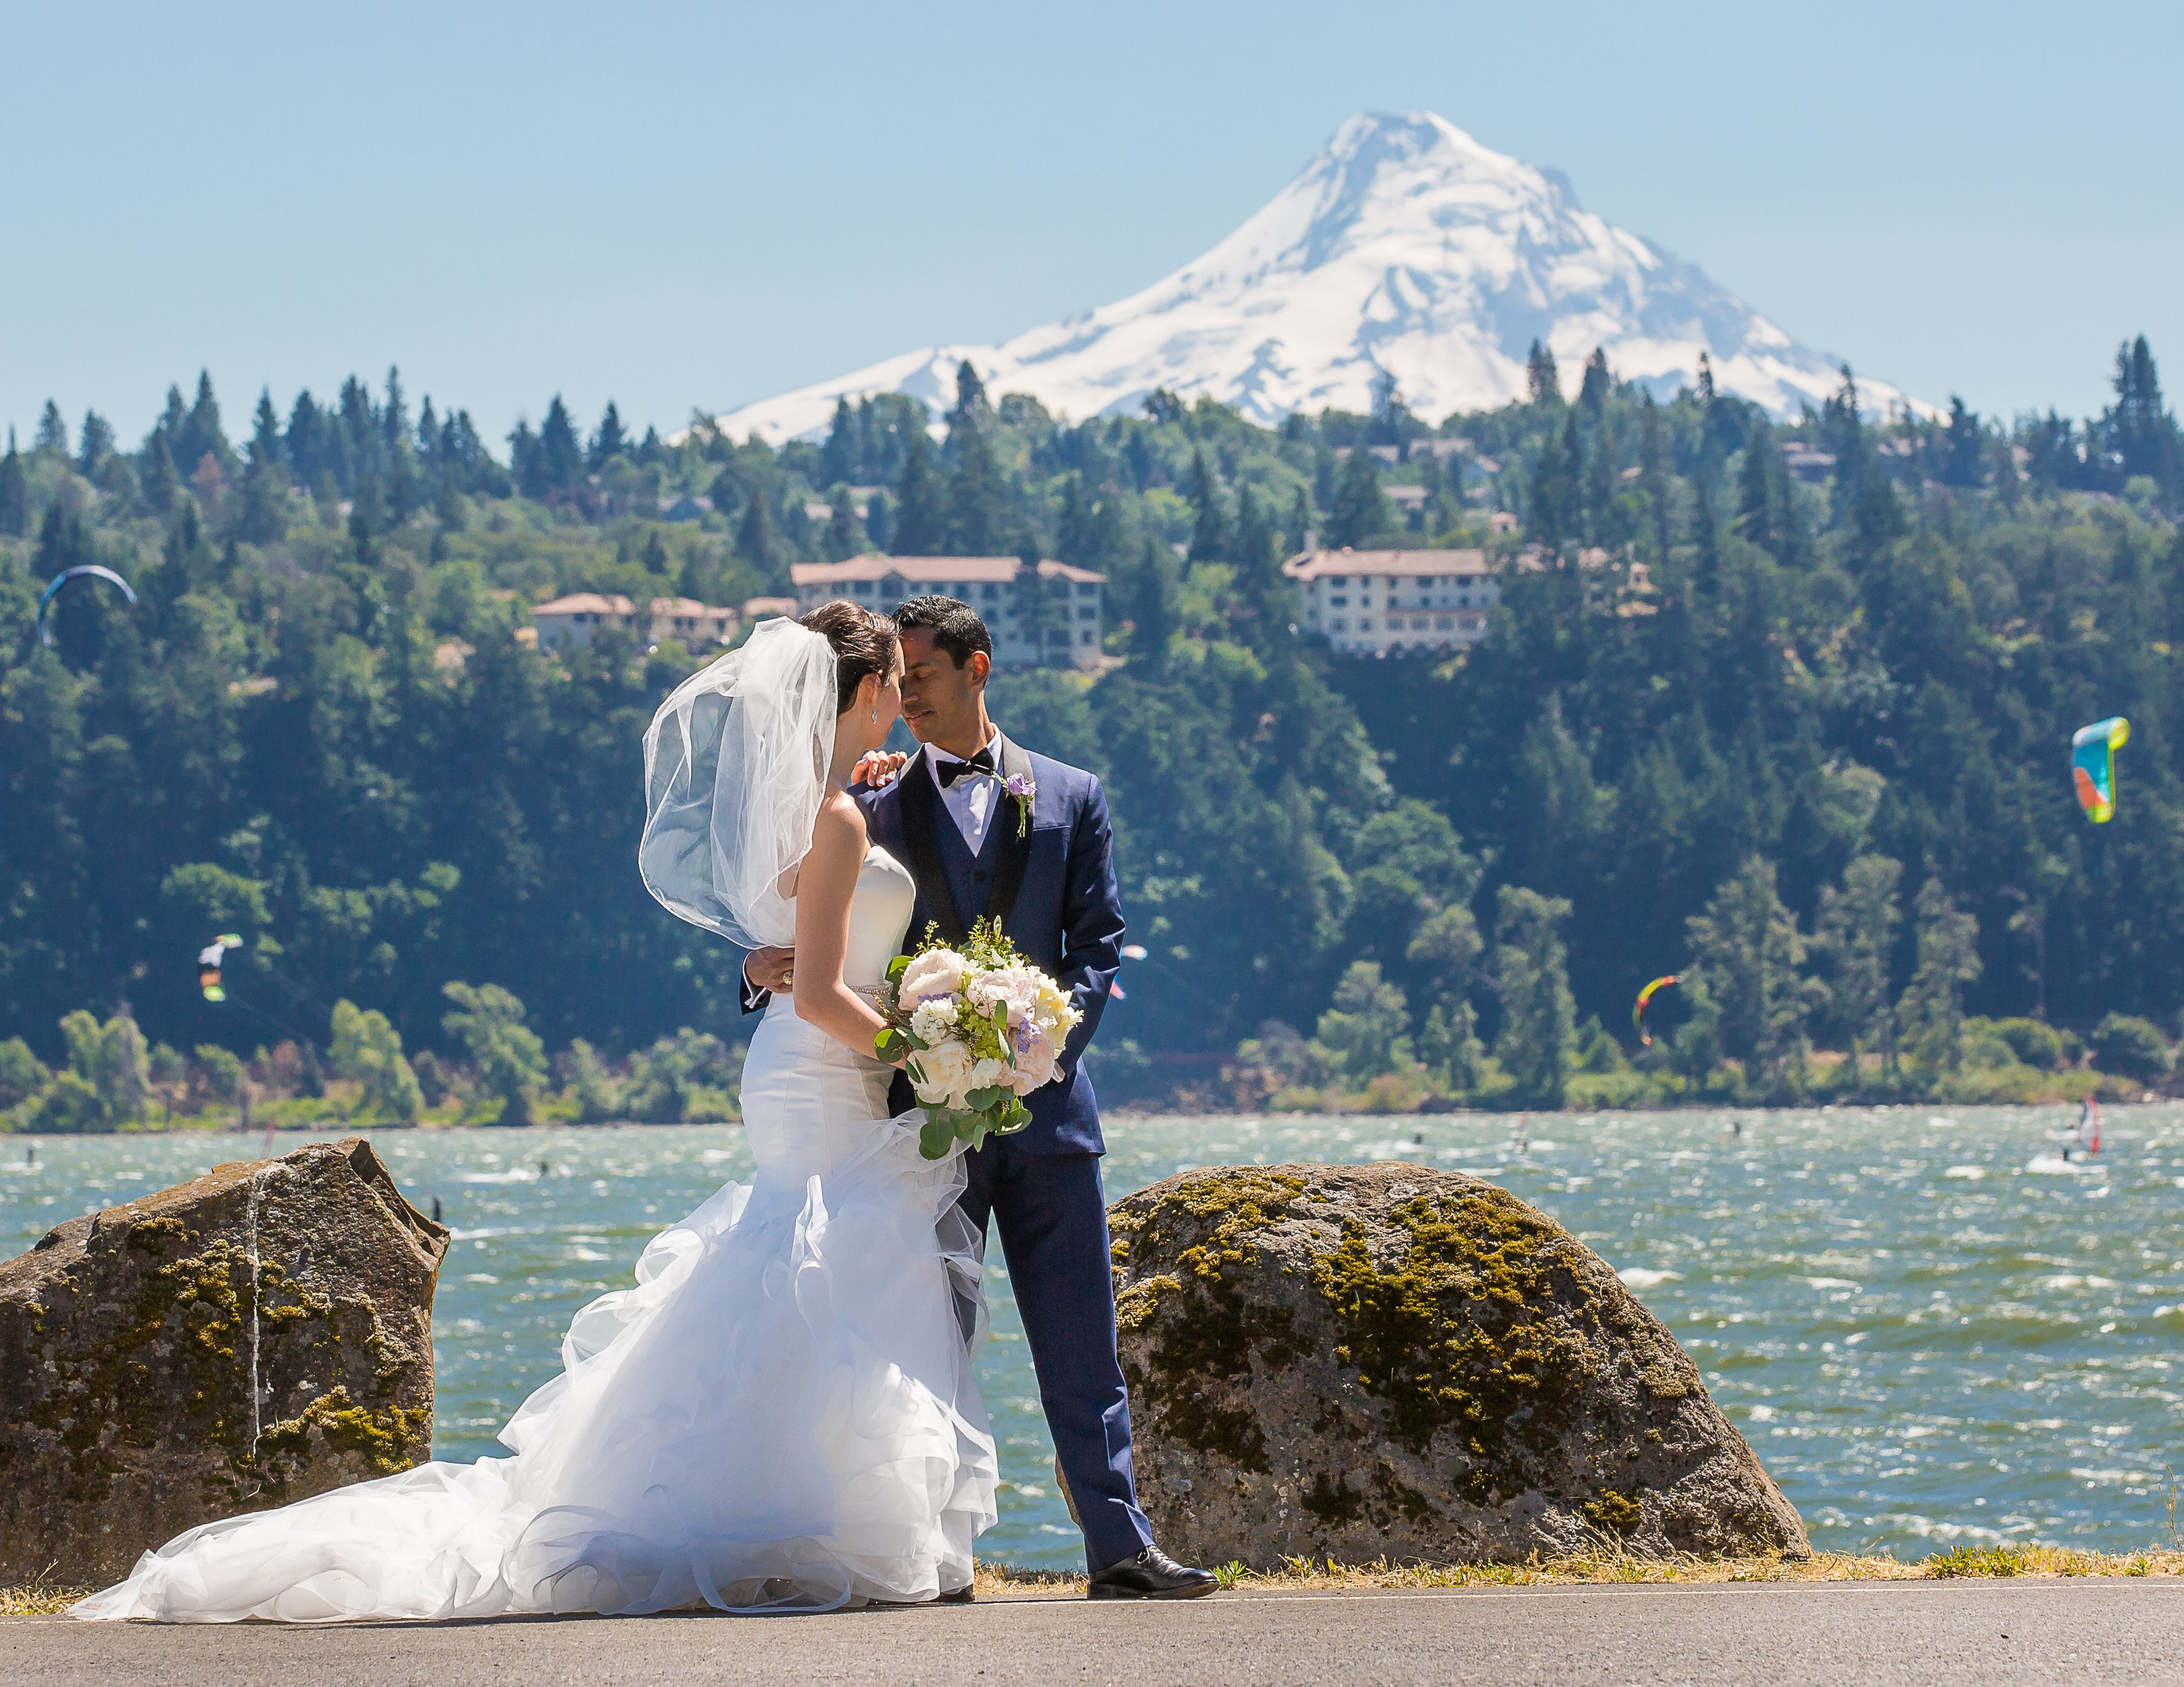 A stunning backdrop to your wedding daythe columbia